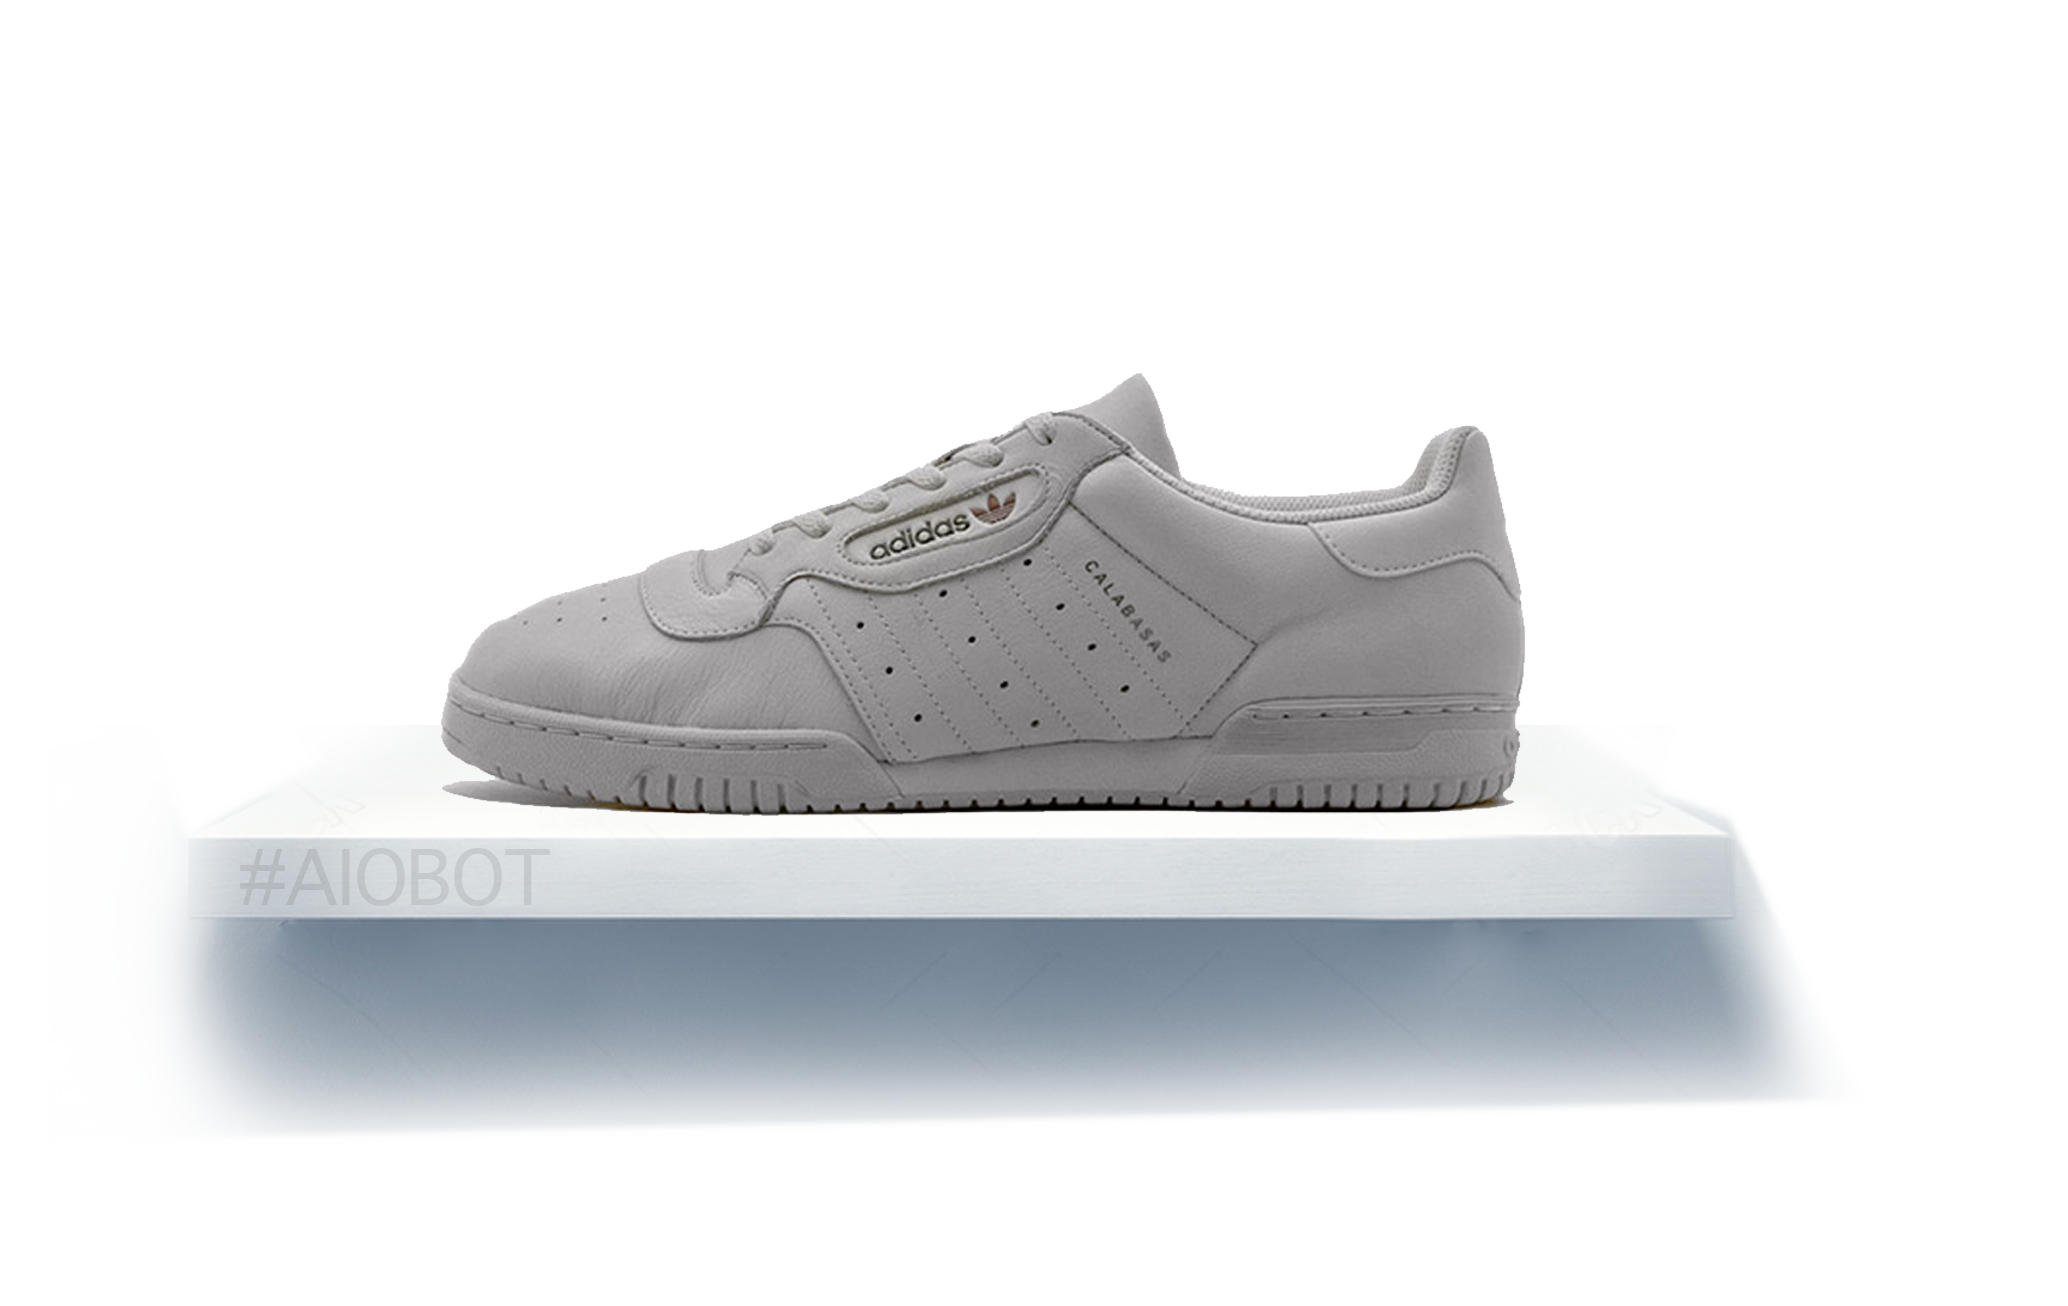 c0e625d0e Yeezy Powerphase Calabasas Grey Releasing in a Few Days